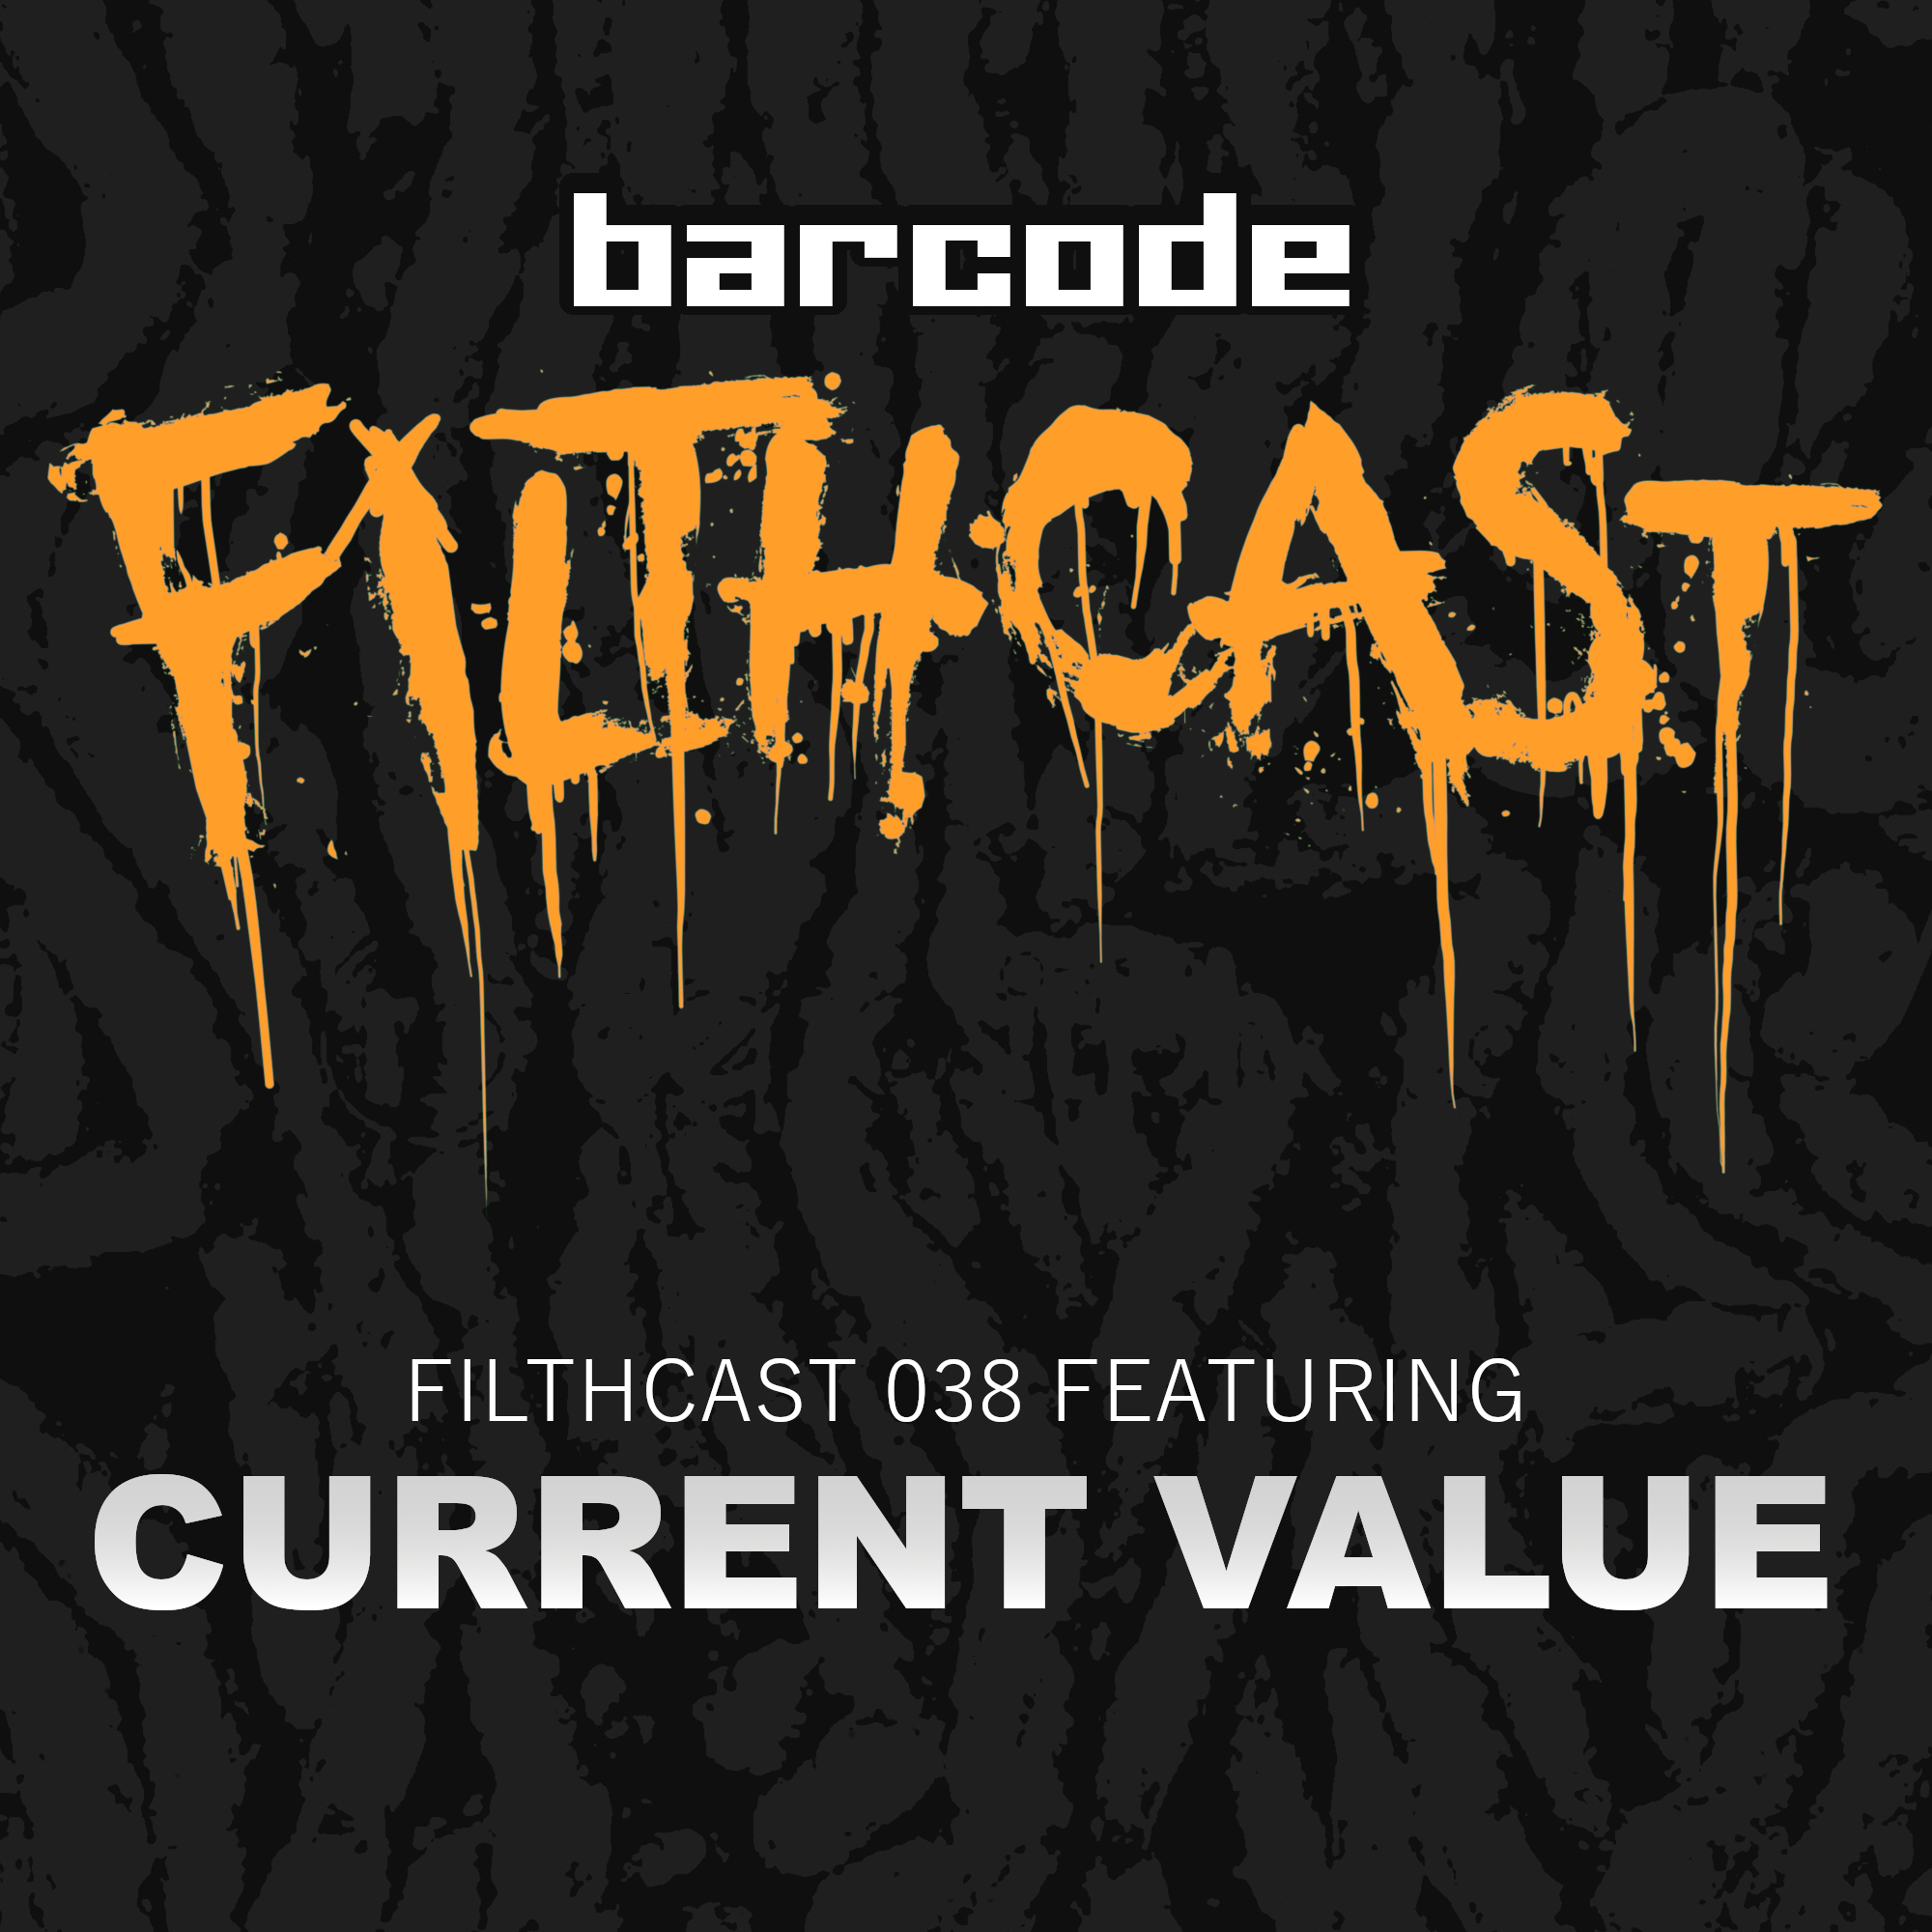 Current Value returns to the Filthcast with a mix showcasing tracks from his Quantum Physics LP on Barcode.